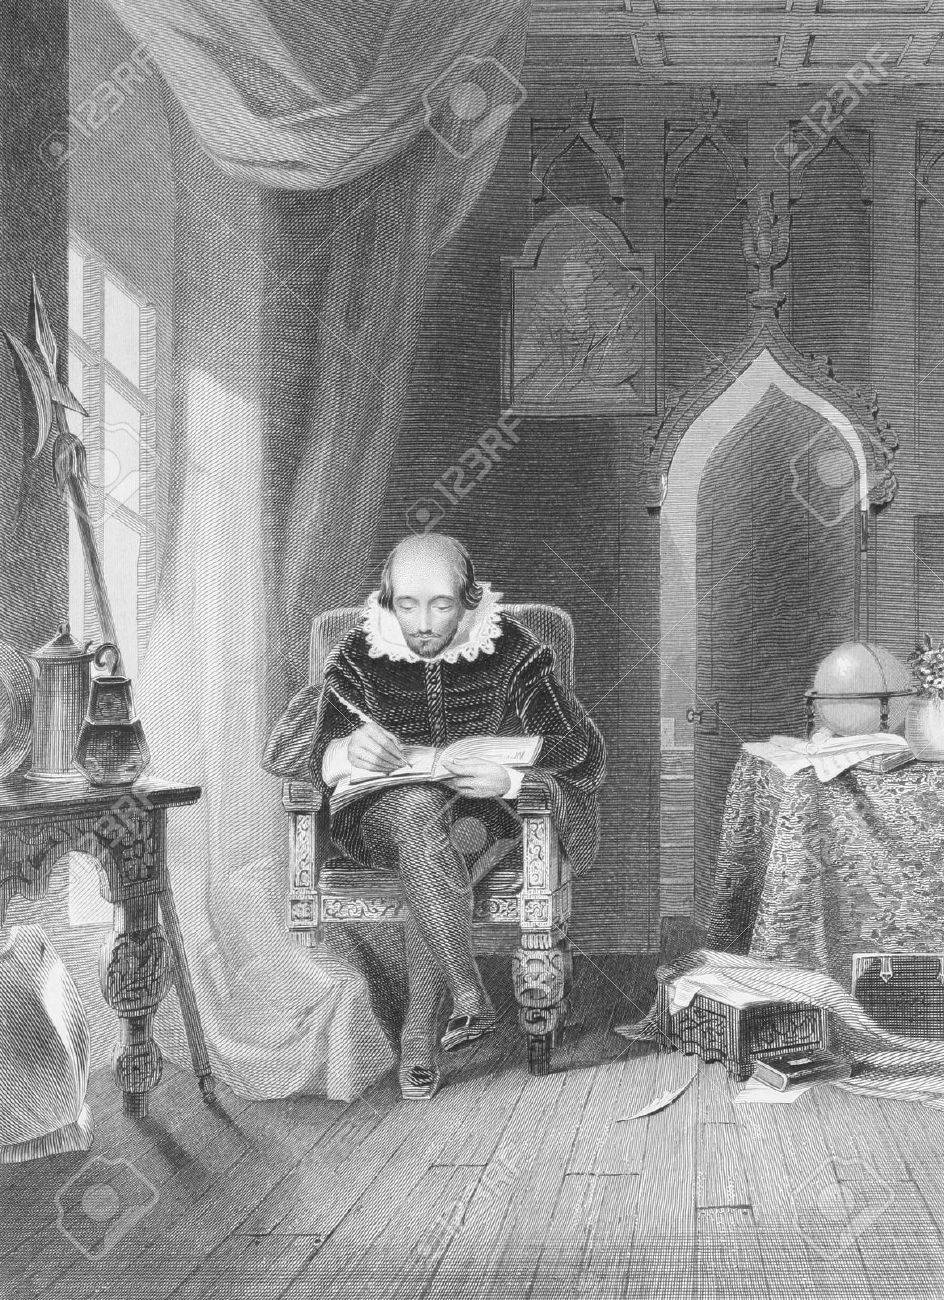 William Shakespeare (1564-1616) on engraving from the 1800s. English poet and playwright, widely regarded as the greatest writer in the English language. Engraved by A.H.Payne and published in London by Brain & Payne, 12, Paternoster Row. Stock Photo - 8520613